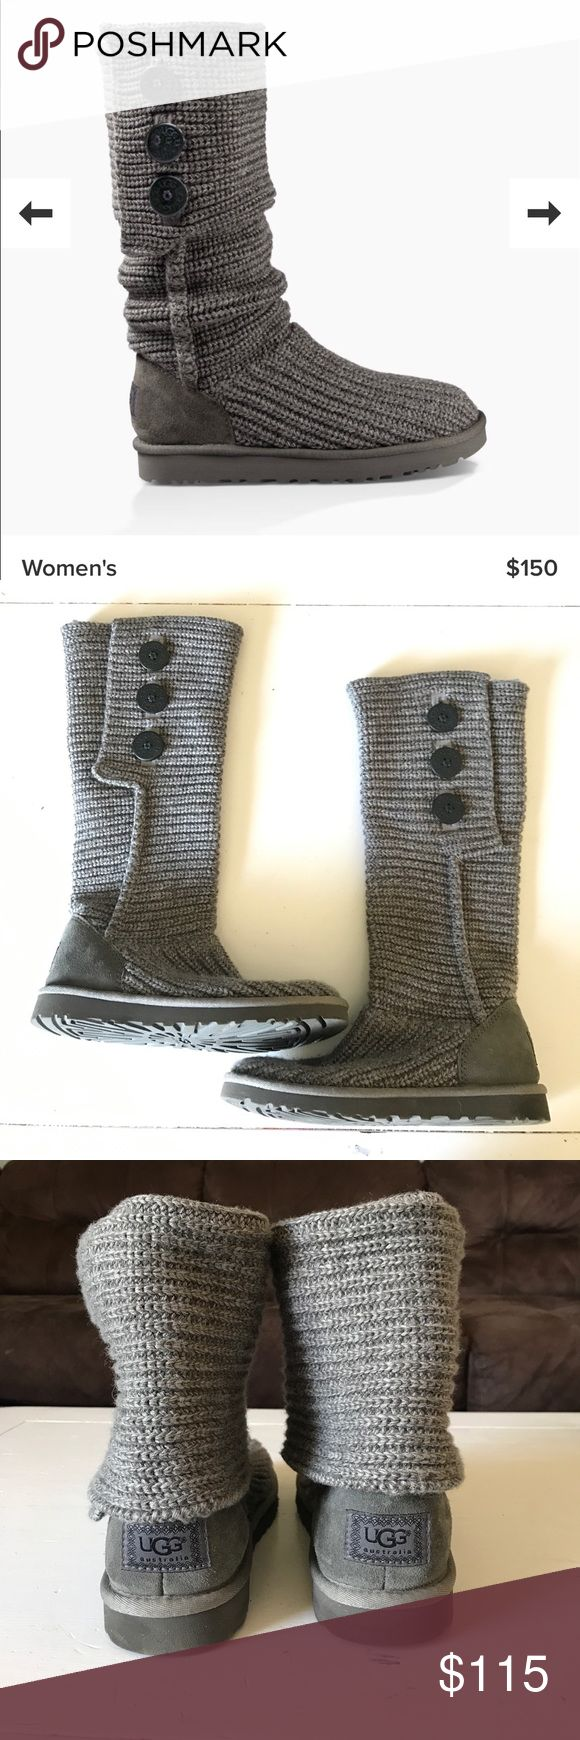 Ugg Classic Cardy Grey. Lightly worn. Size 7. Smoke free home. No trades UGG Shoes Winter & Rain Boots